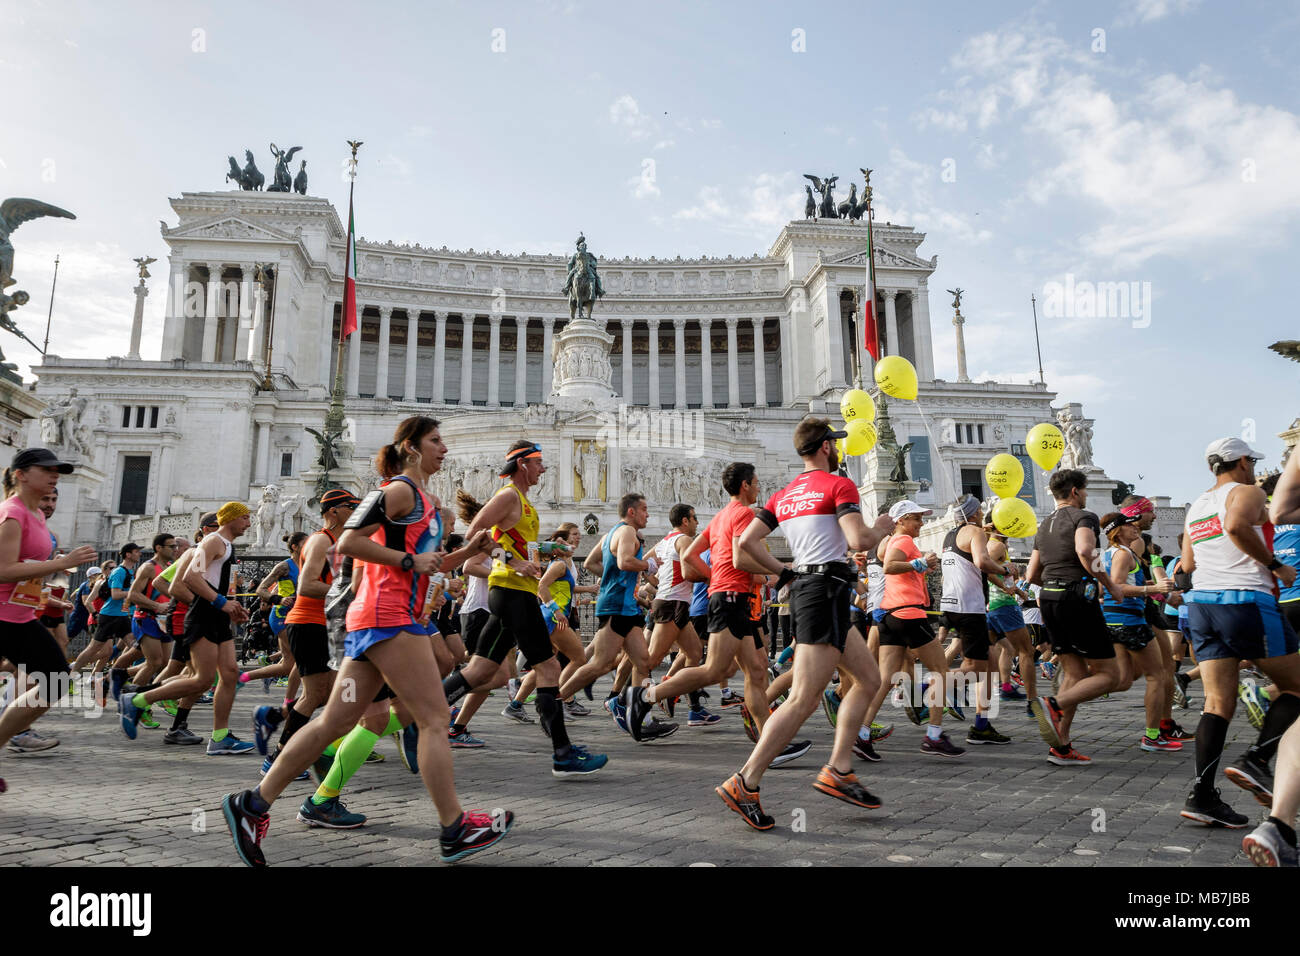 Rome, Italy. 08th April, 2018. Runners compete during the 24th edition of the Maratona di Roma (Rome Marathon), an annual IAAF (International Association of Athletics Federations) marathon competition hosted by the city of Rome. 100.000 runners from 131 countries take part in the 24th Marathon of Rome which has a distance of total length of 42,195 kilometers. Credit: Giuseppe Ciccia/Alamy Live News - Stock Image